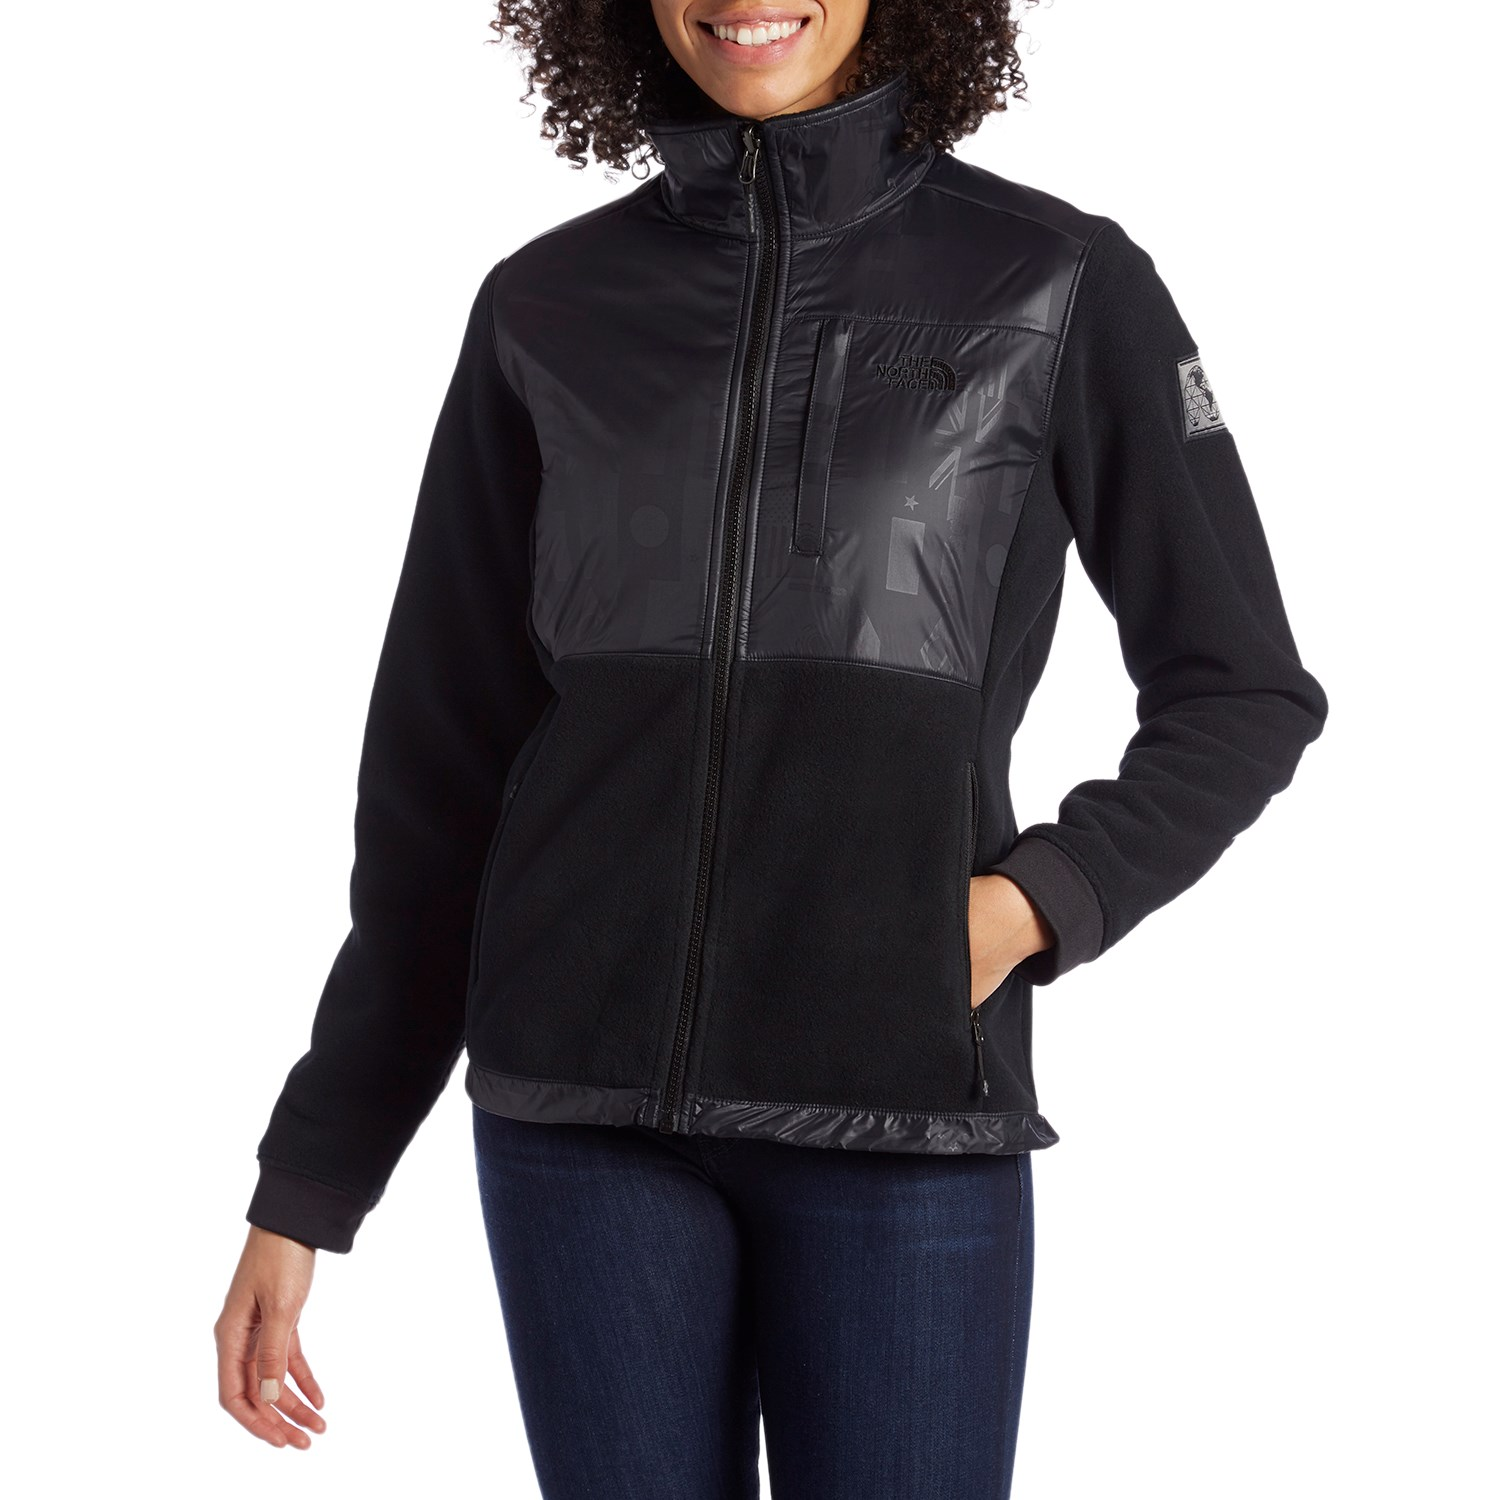 ffb7a37a5 The North Face International Collection Denali 2 Jacket - Women's